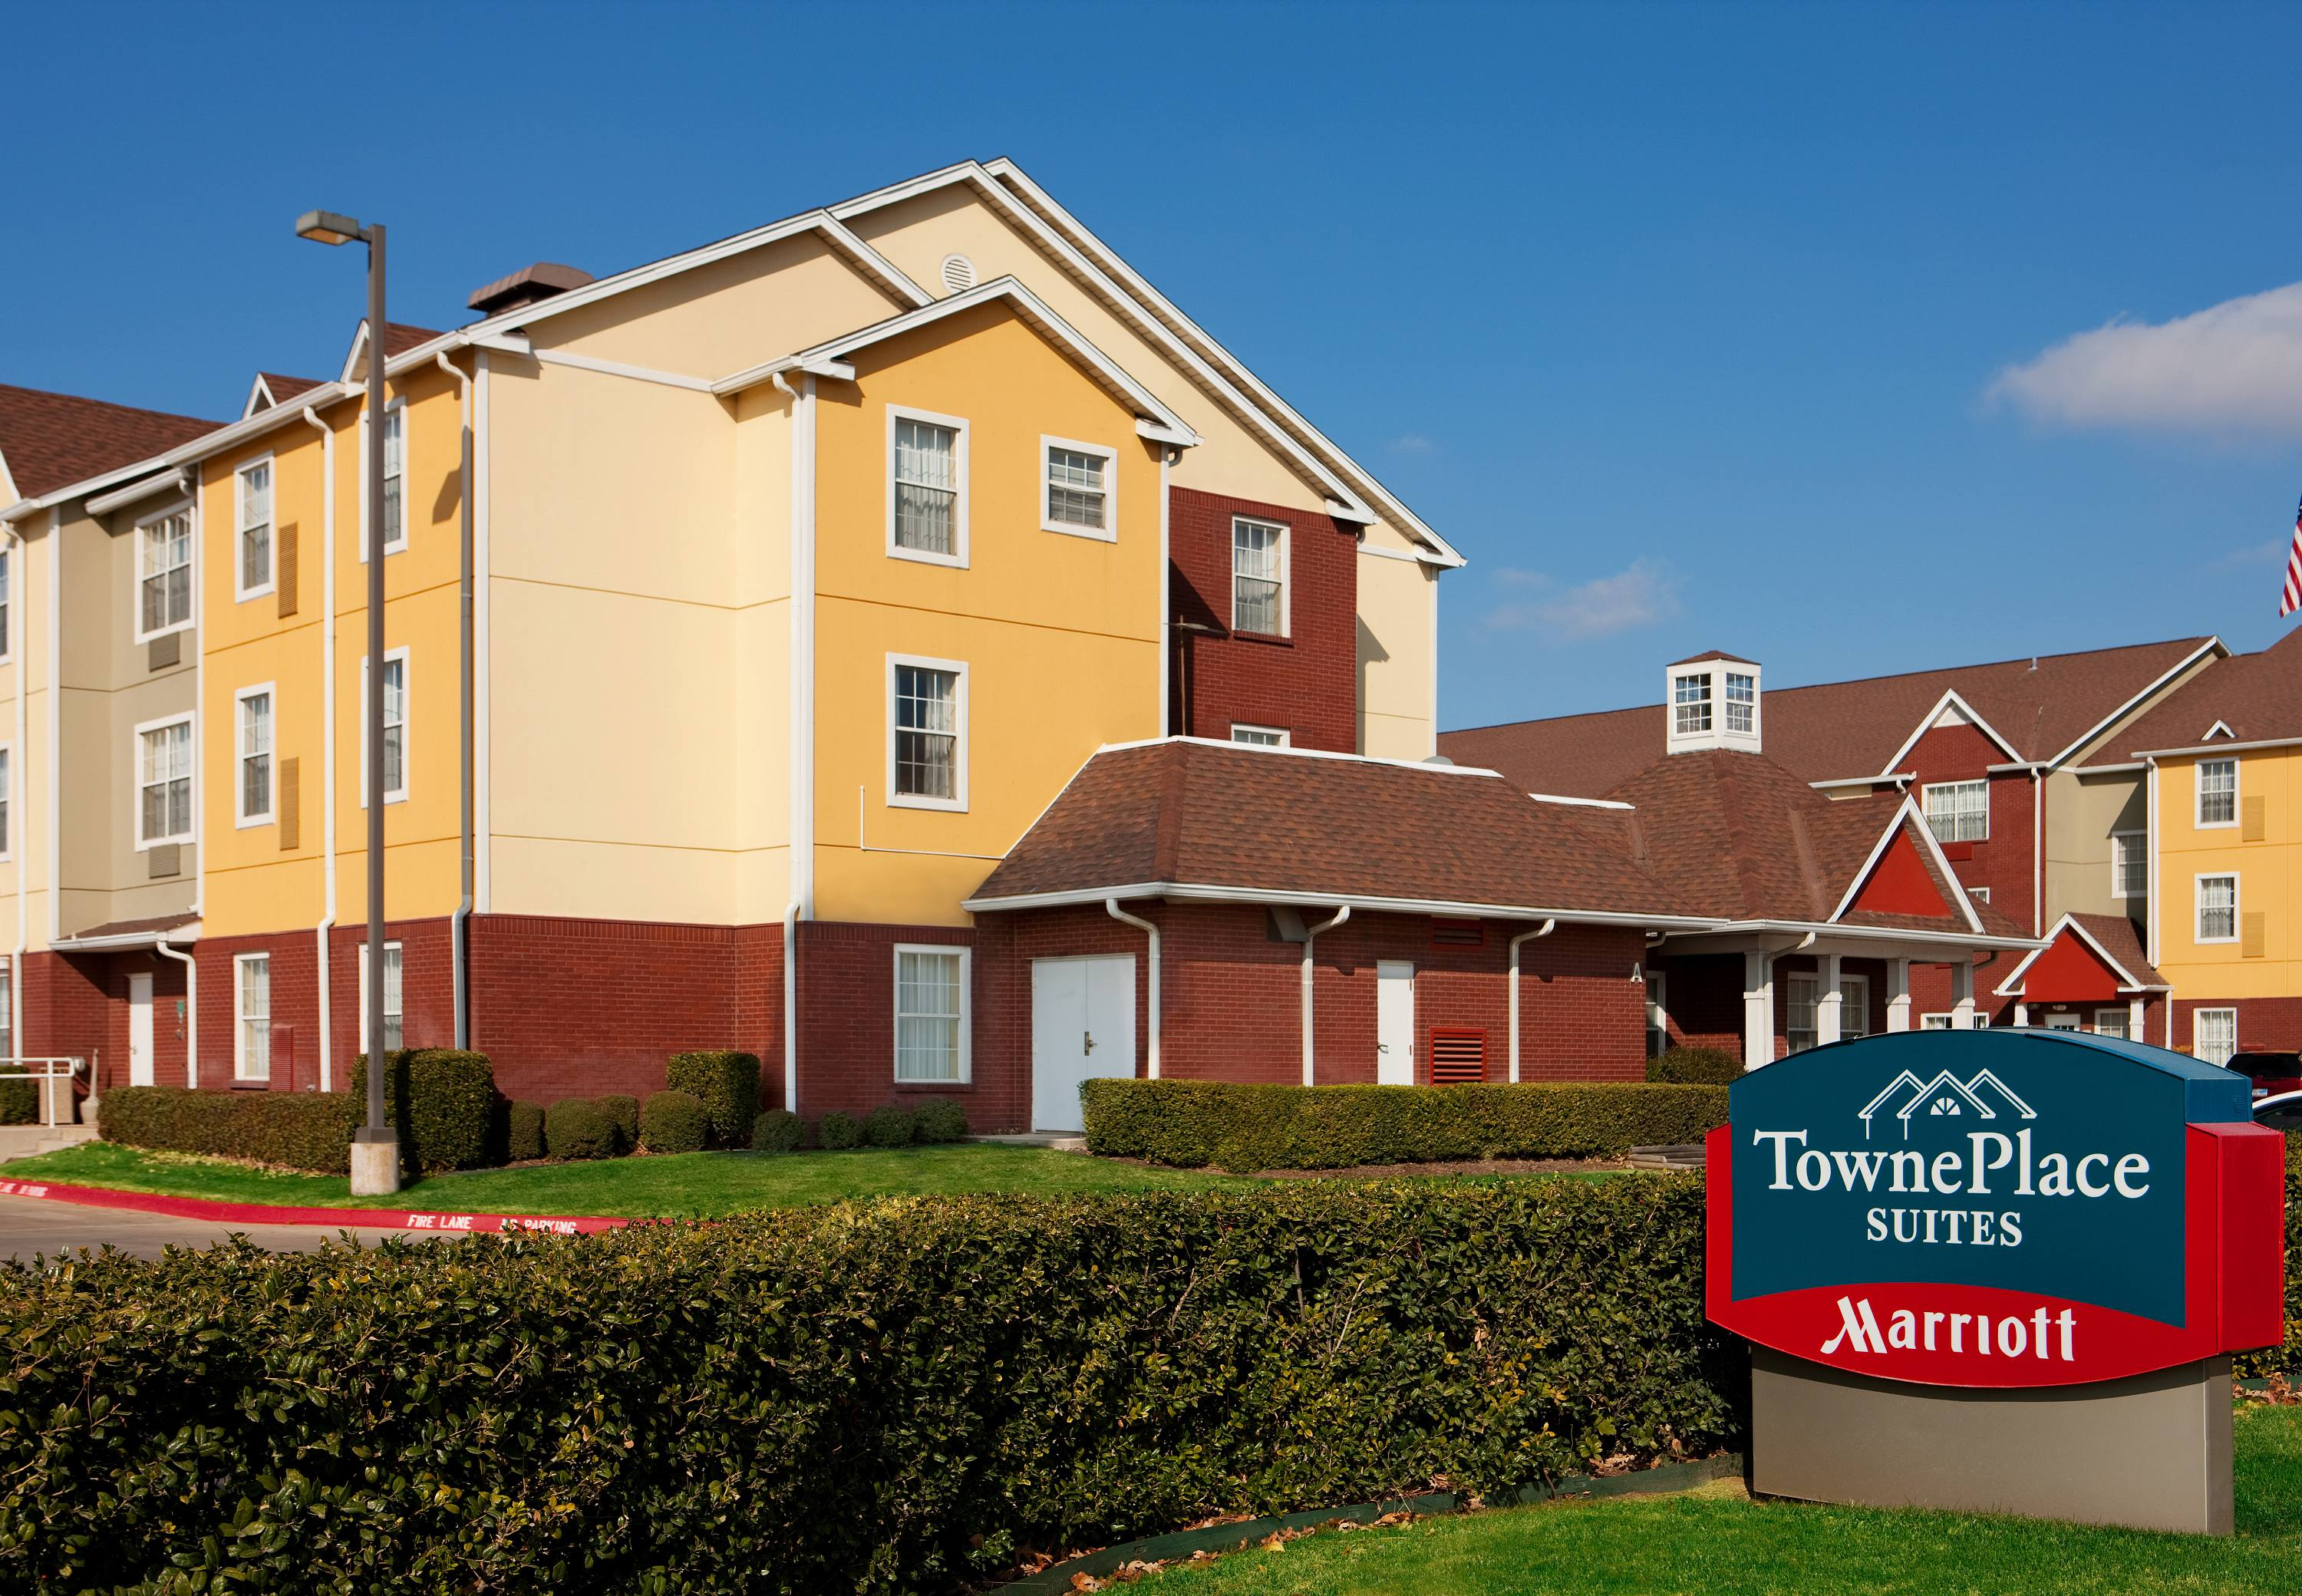 TownePlace Suites by Marriott Fort Worth Southwest/TCU Area image 11